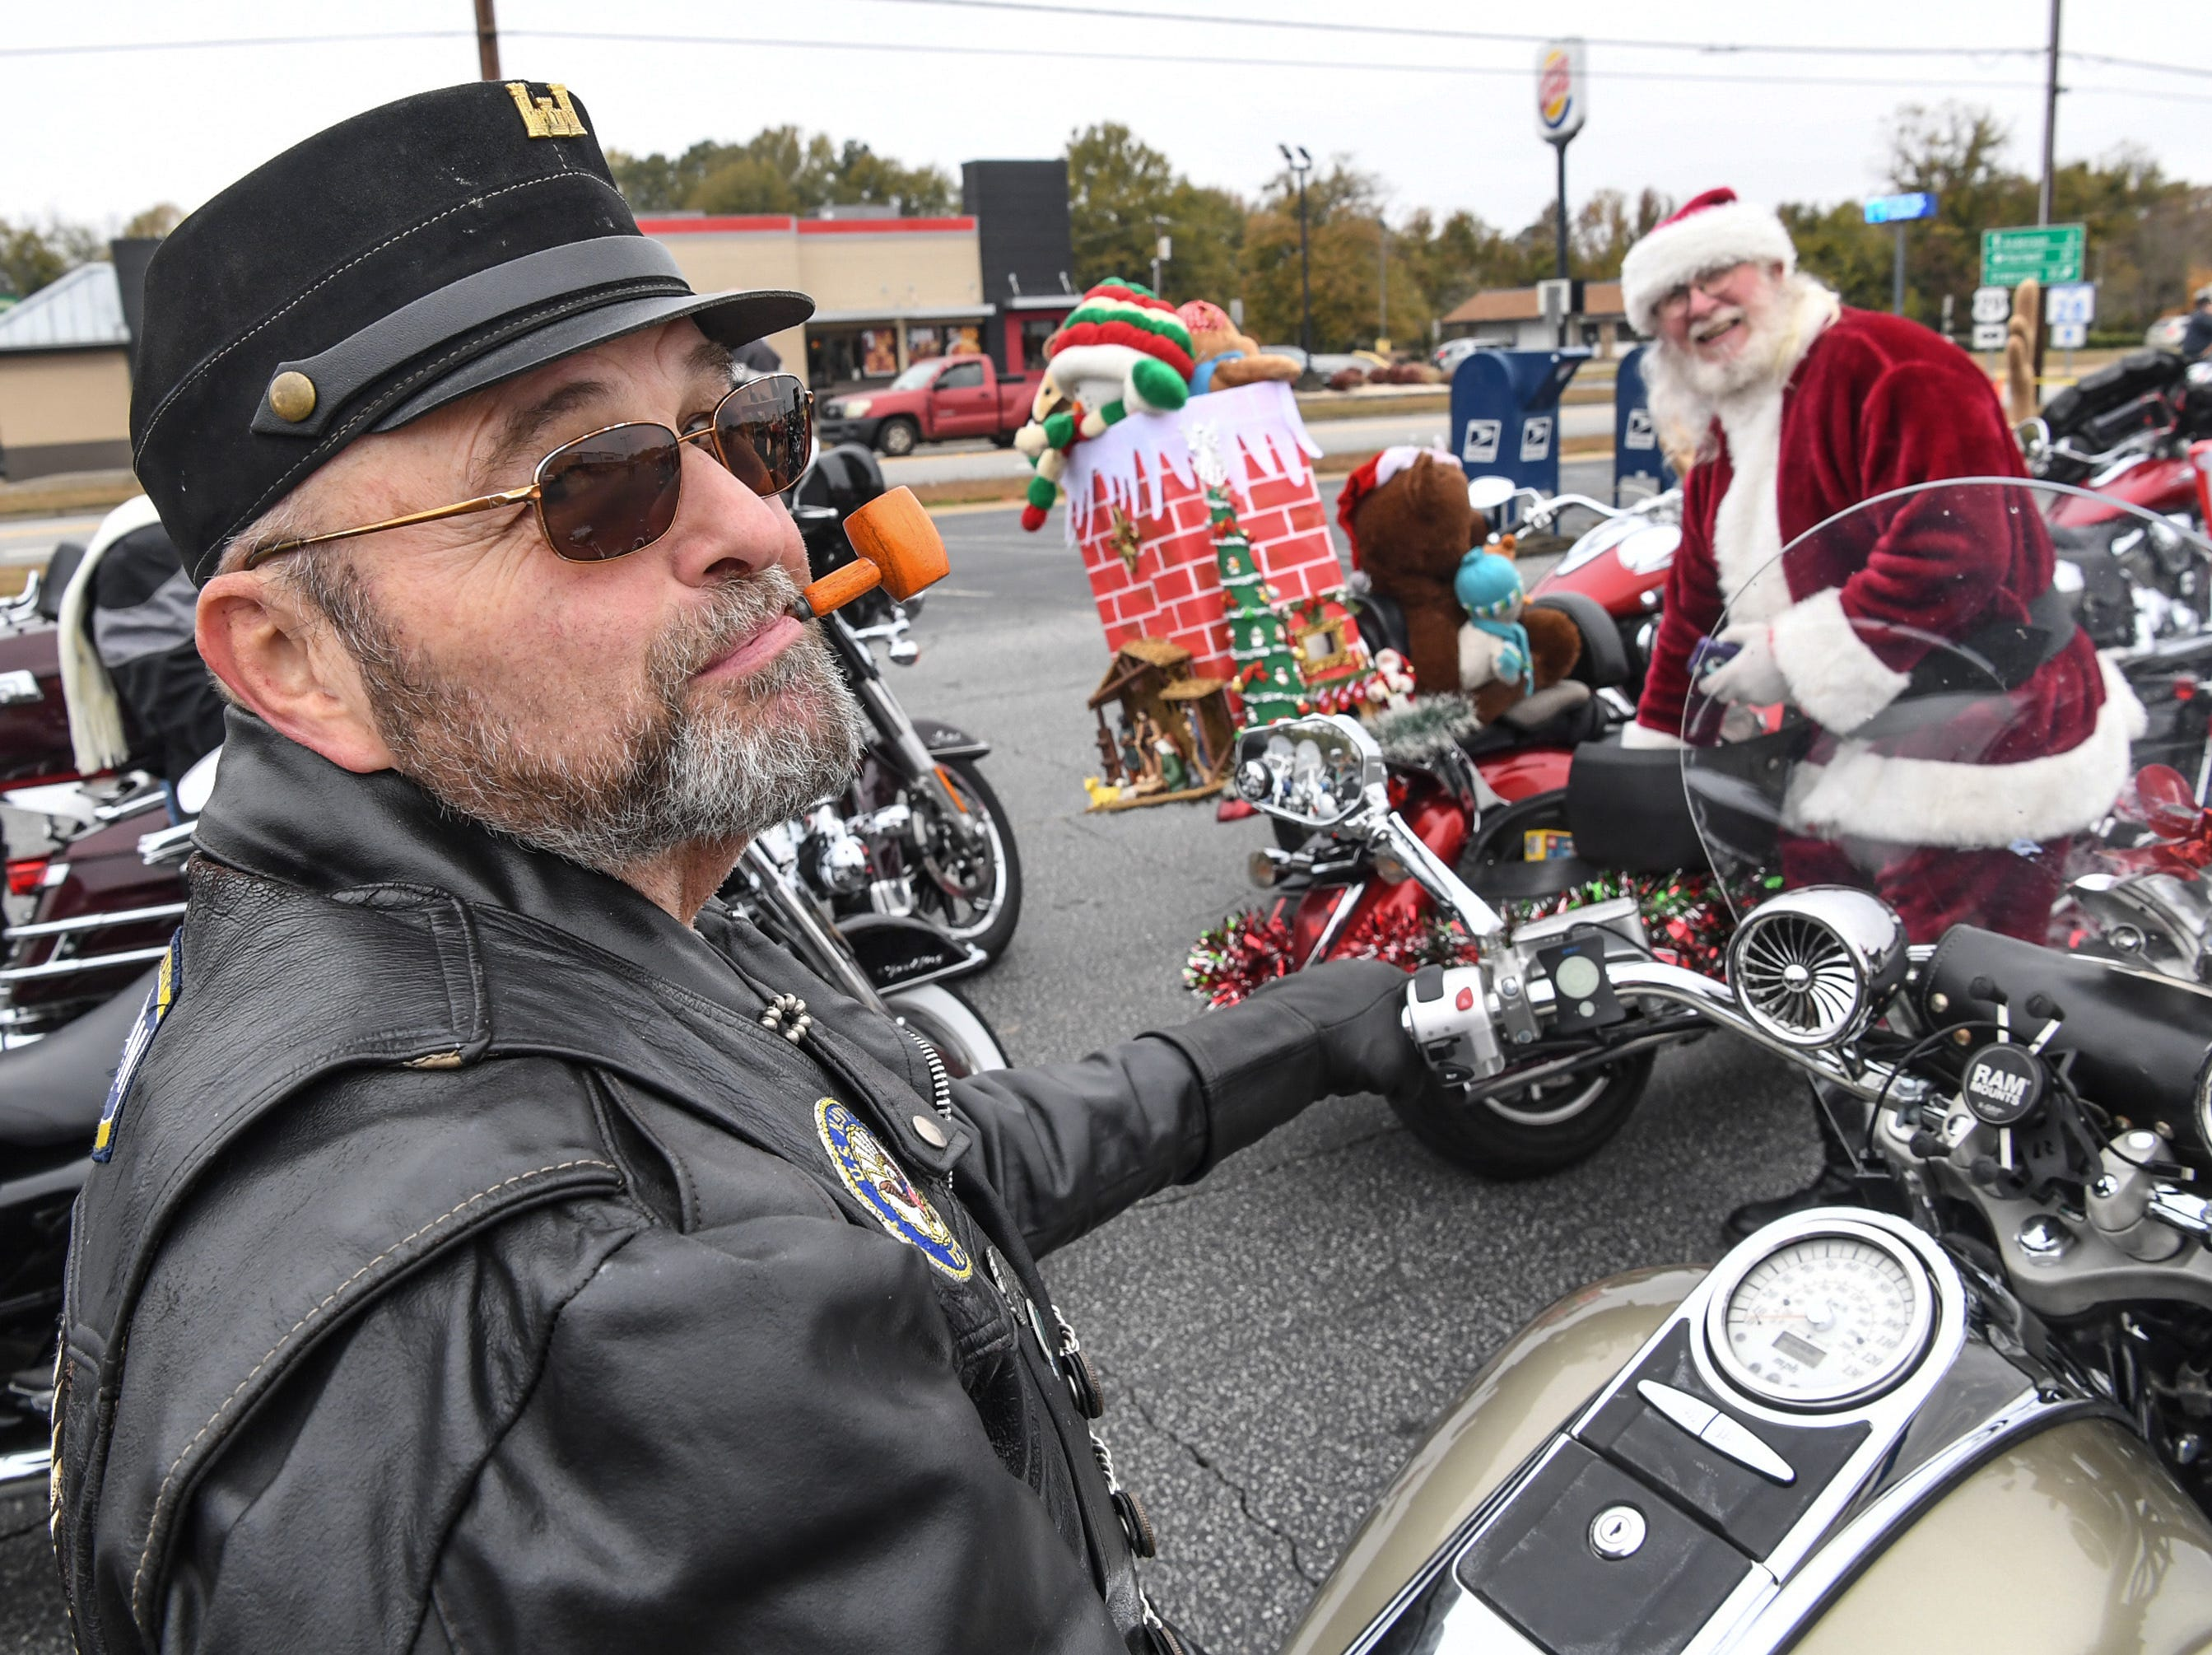 """Jamie Gordon of Easley, left, sits on his motorcycle near Kenny Hooper in a Santa suit before the 38th Jack Hurley Toy Parade in Anderson on Sunday, November 25, 2018. The parade started at White Jones Hardware parking lot in the Watson Village, followed along Main Street to the Civic Center of Anderson where toys were donated to Anderson Cares and Shares. Organizer Robert """"Little Man"""" Fagg said about 350 families are helped out with toys for Christmas."""